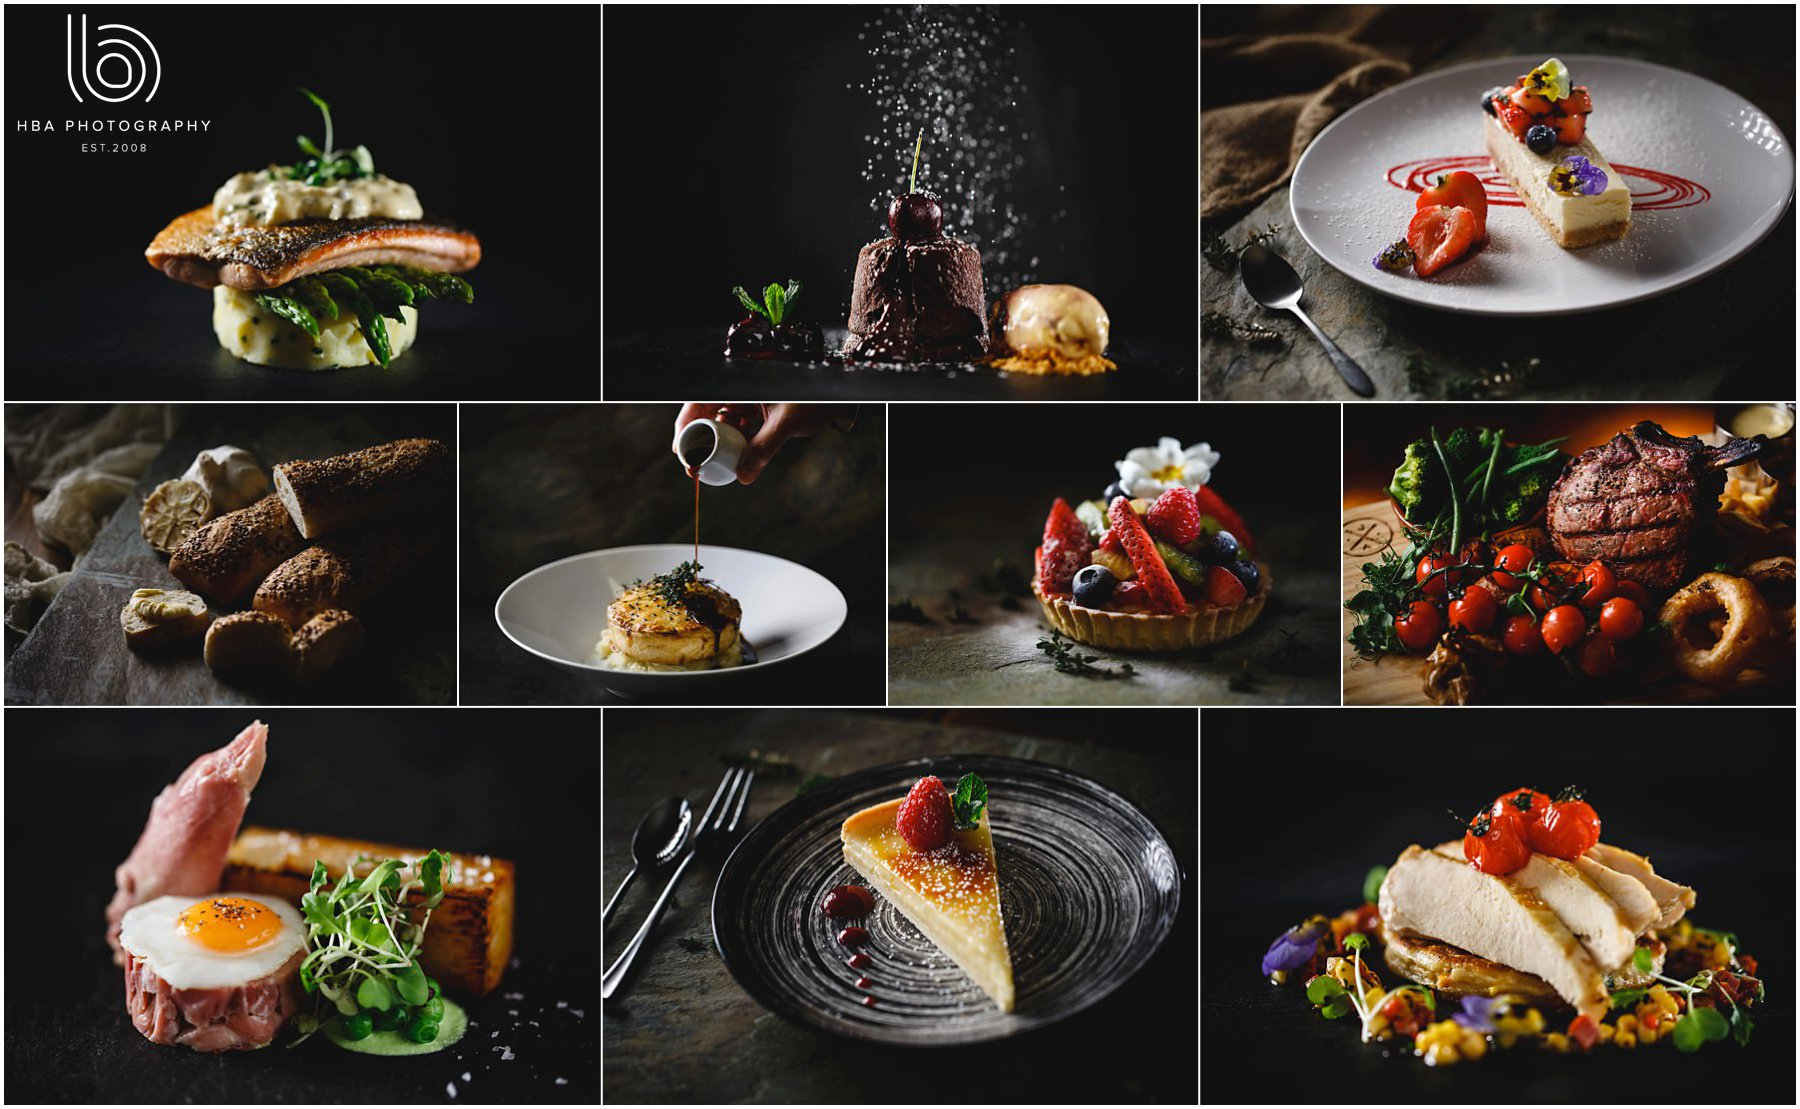 Derbyshire food photography